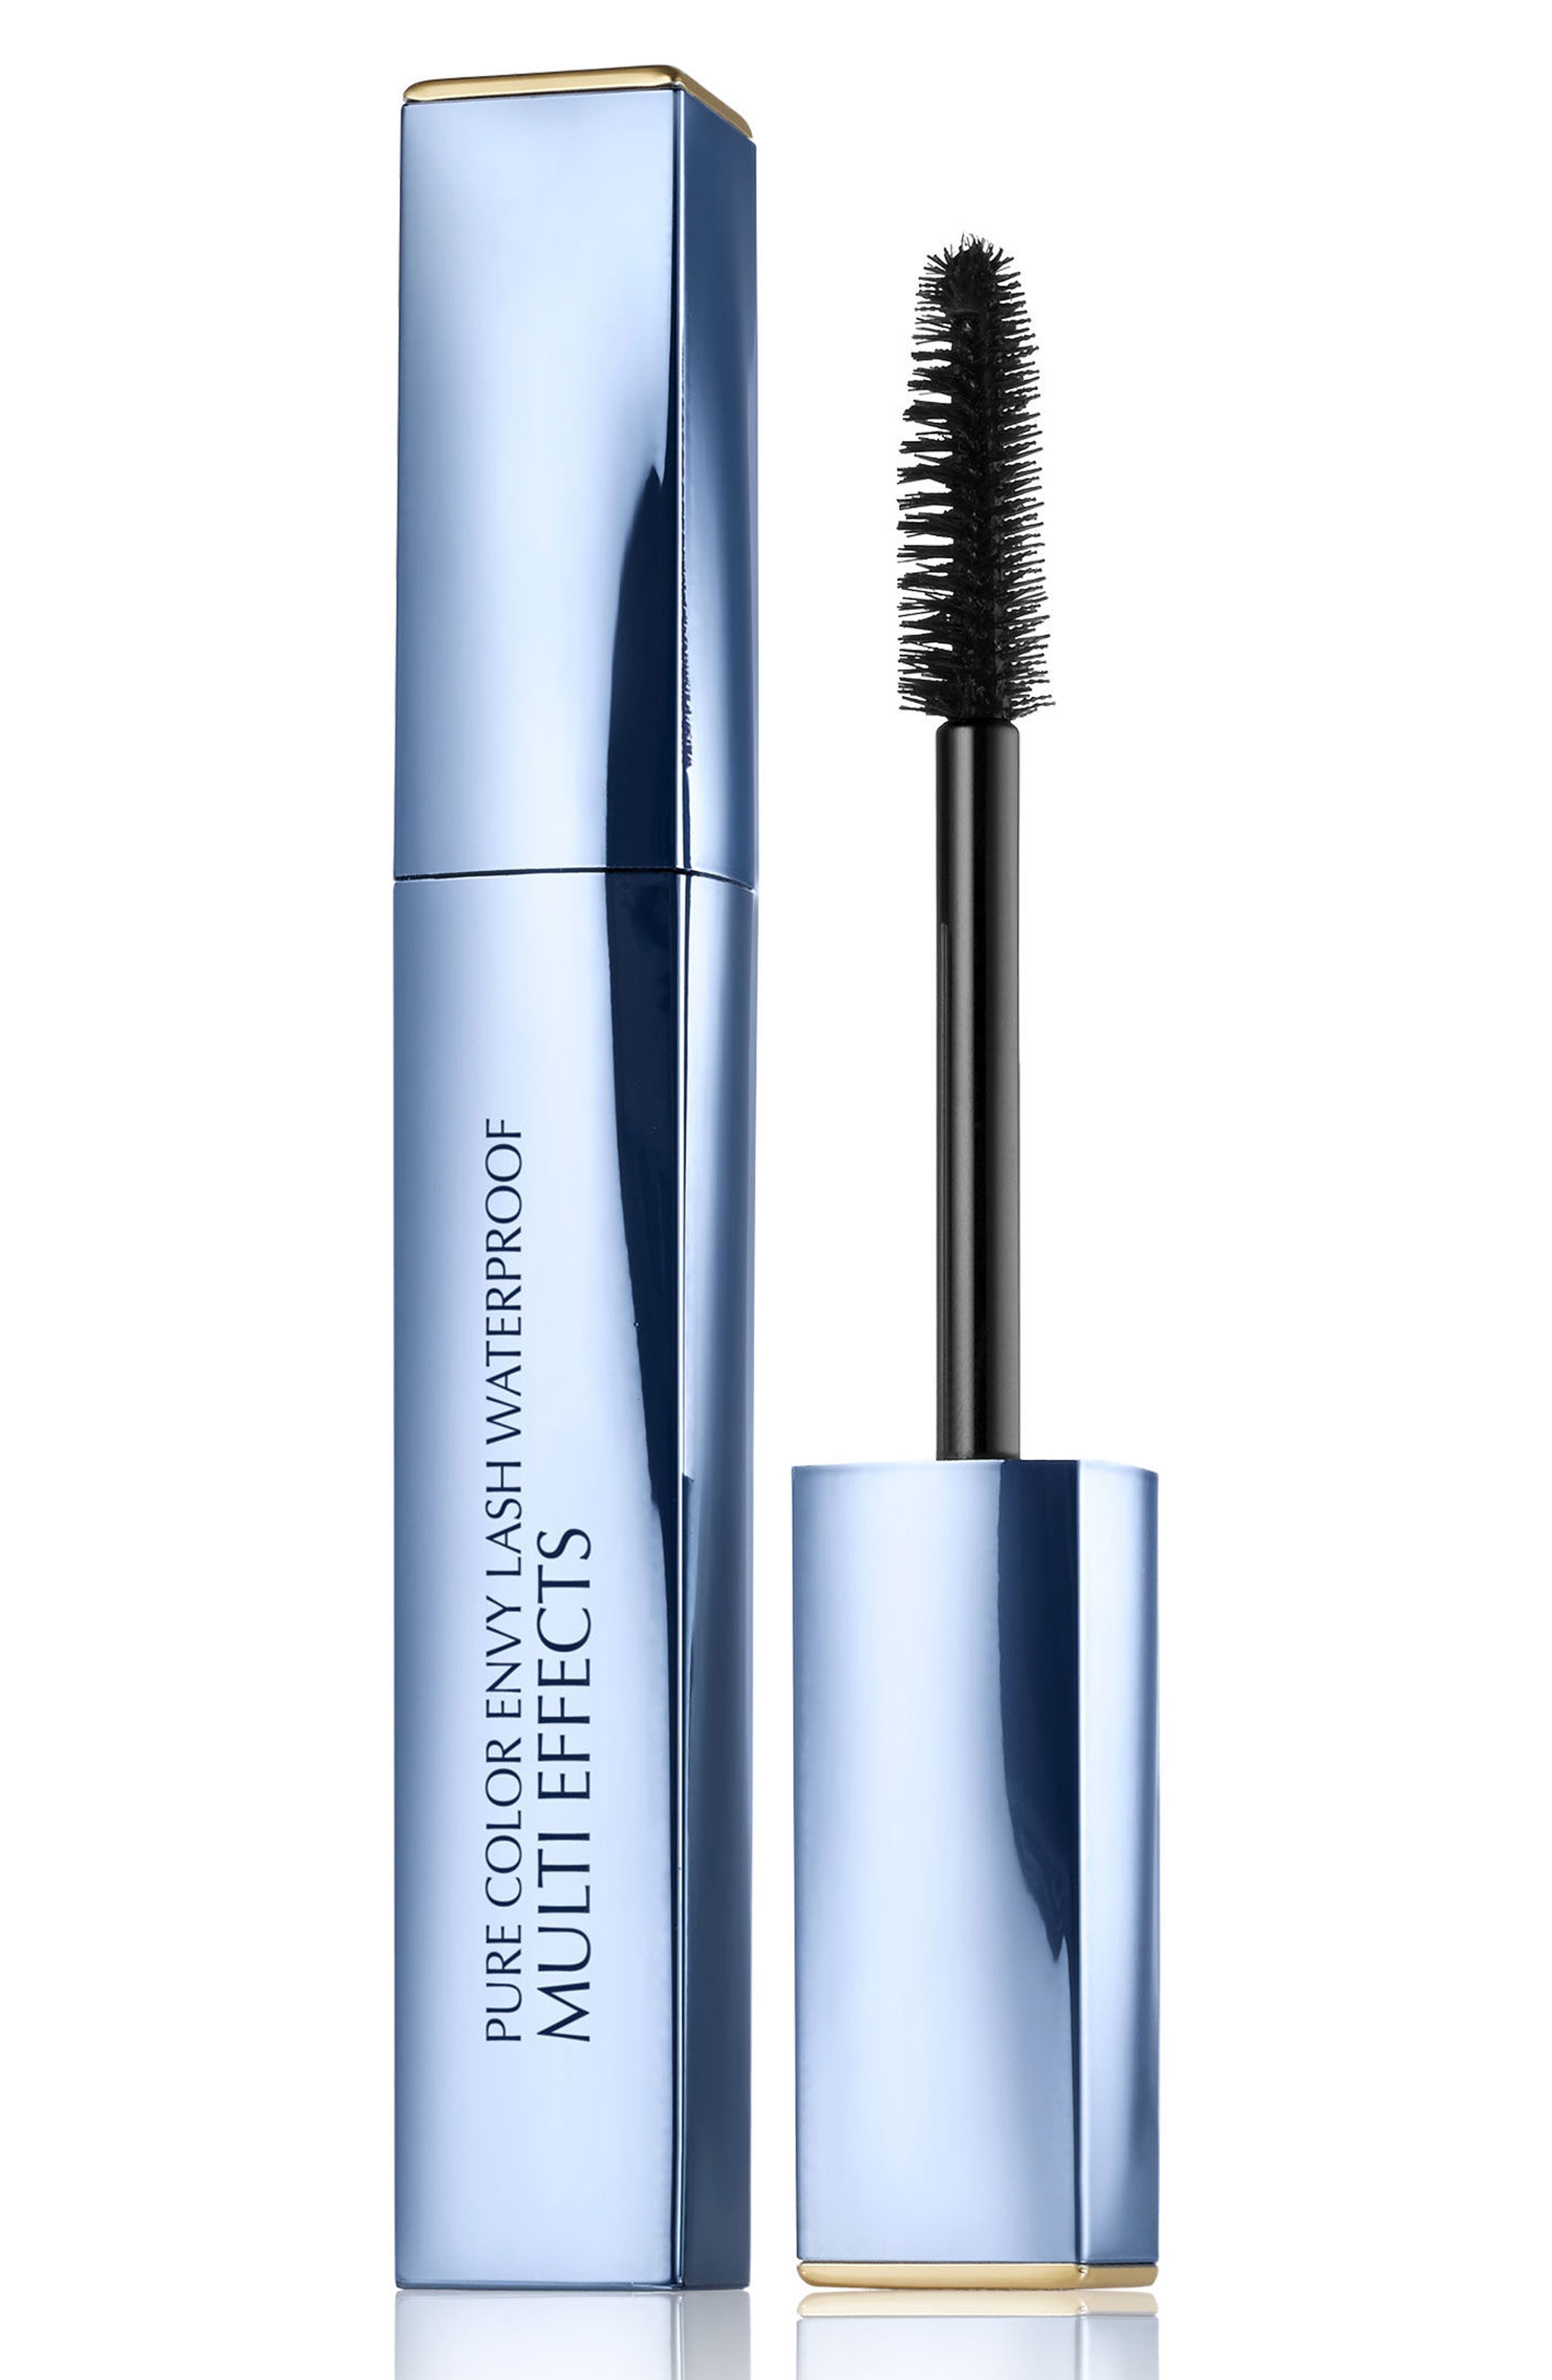 Estée Lauder Pure Color Envy Lash Waterproof Multi Effects Mascara